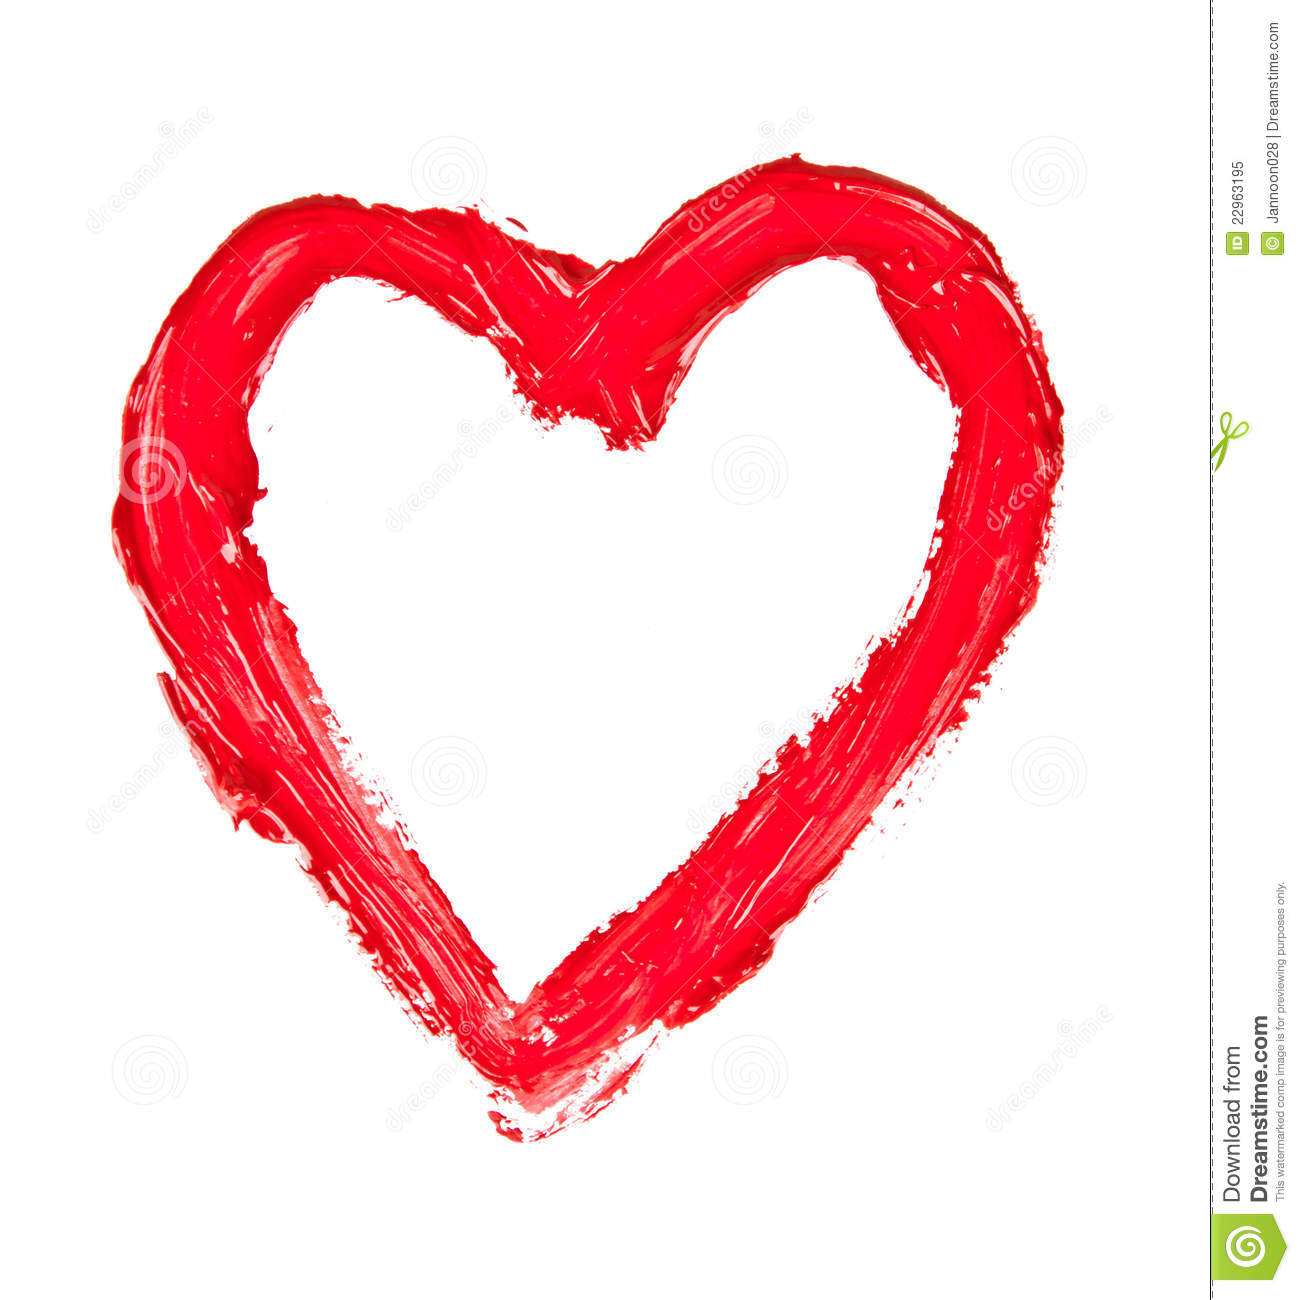 Red Heart Royalty Free Stock Photo - Image: 22963195